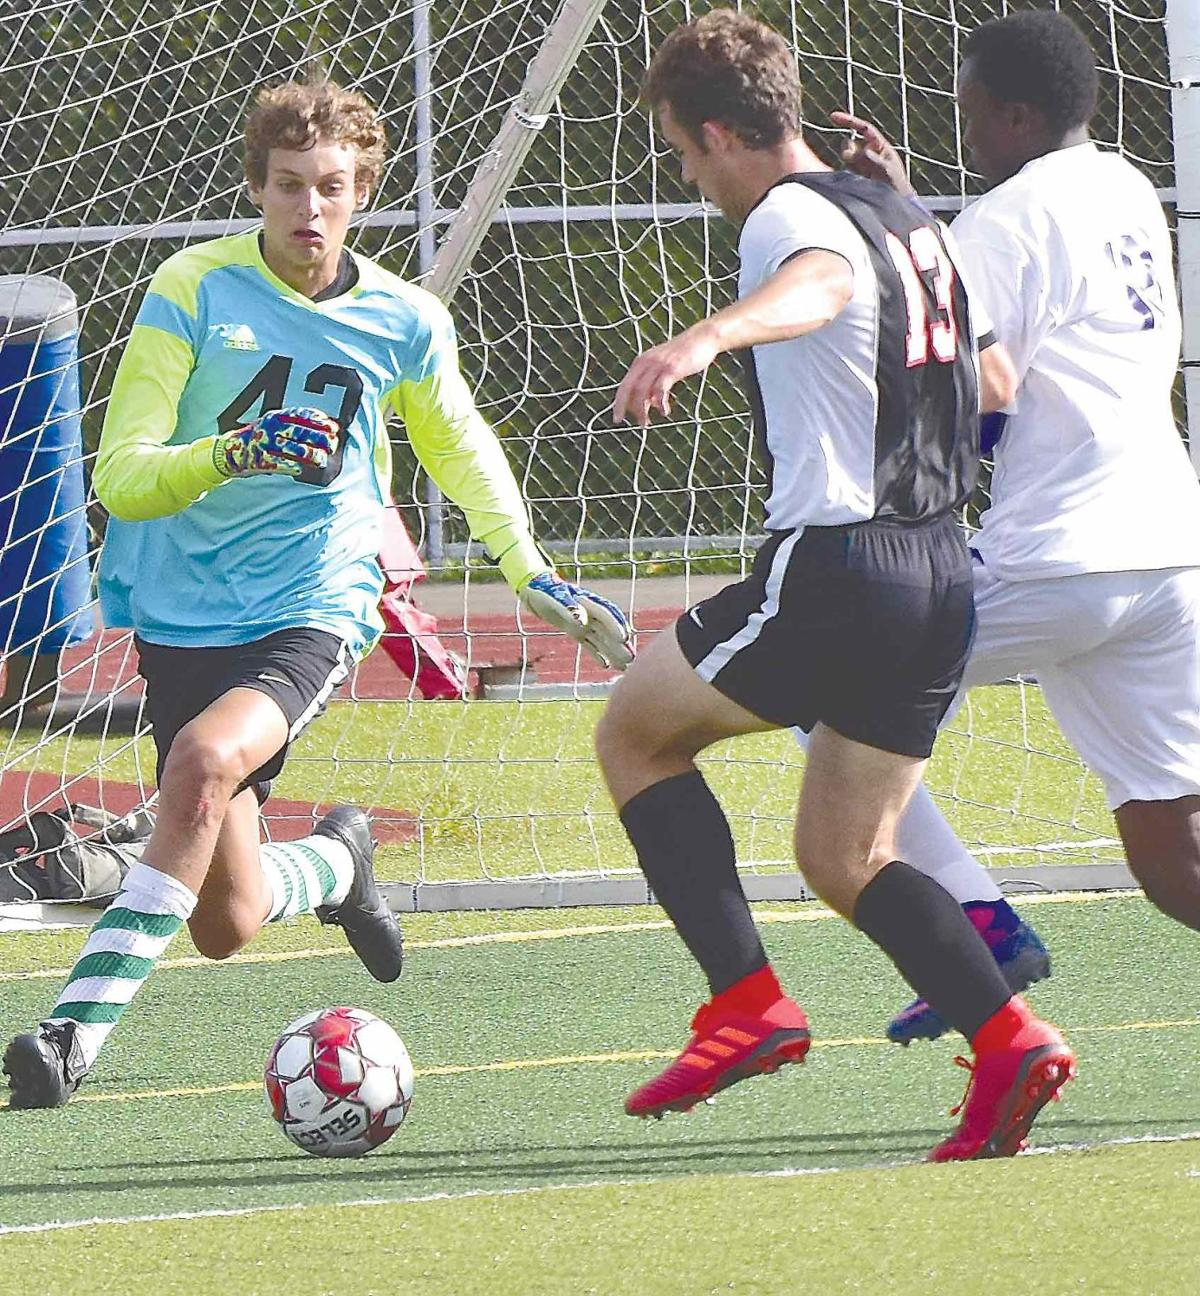 Franklin booters drop opener to Erie High, 4-0